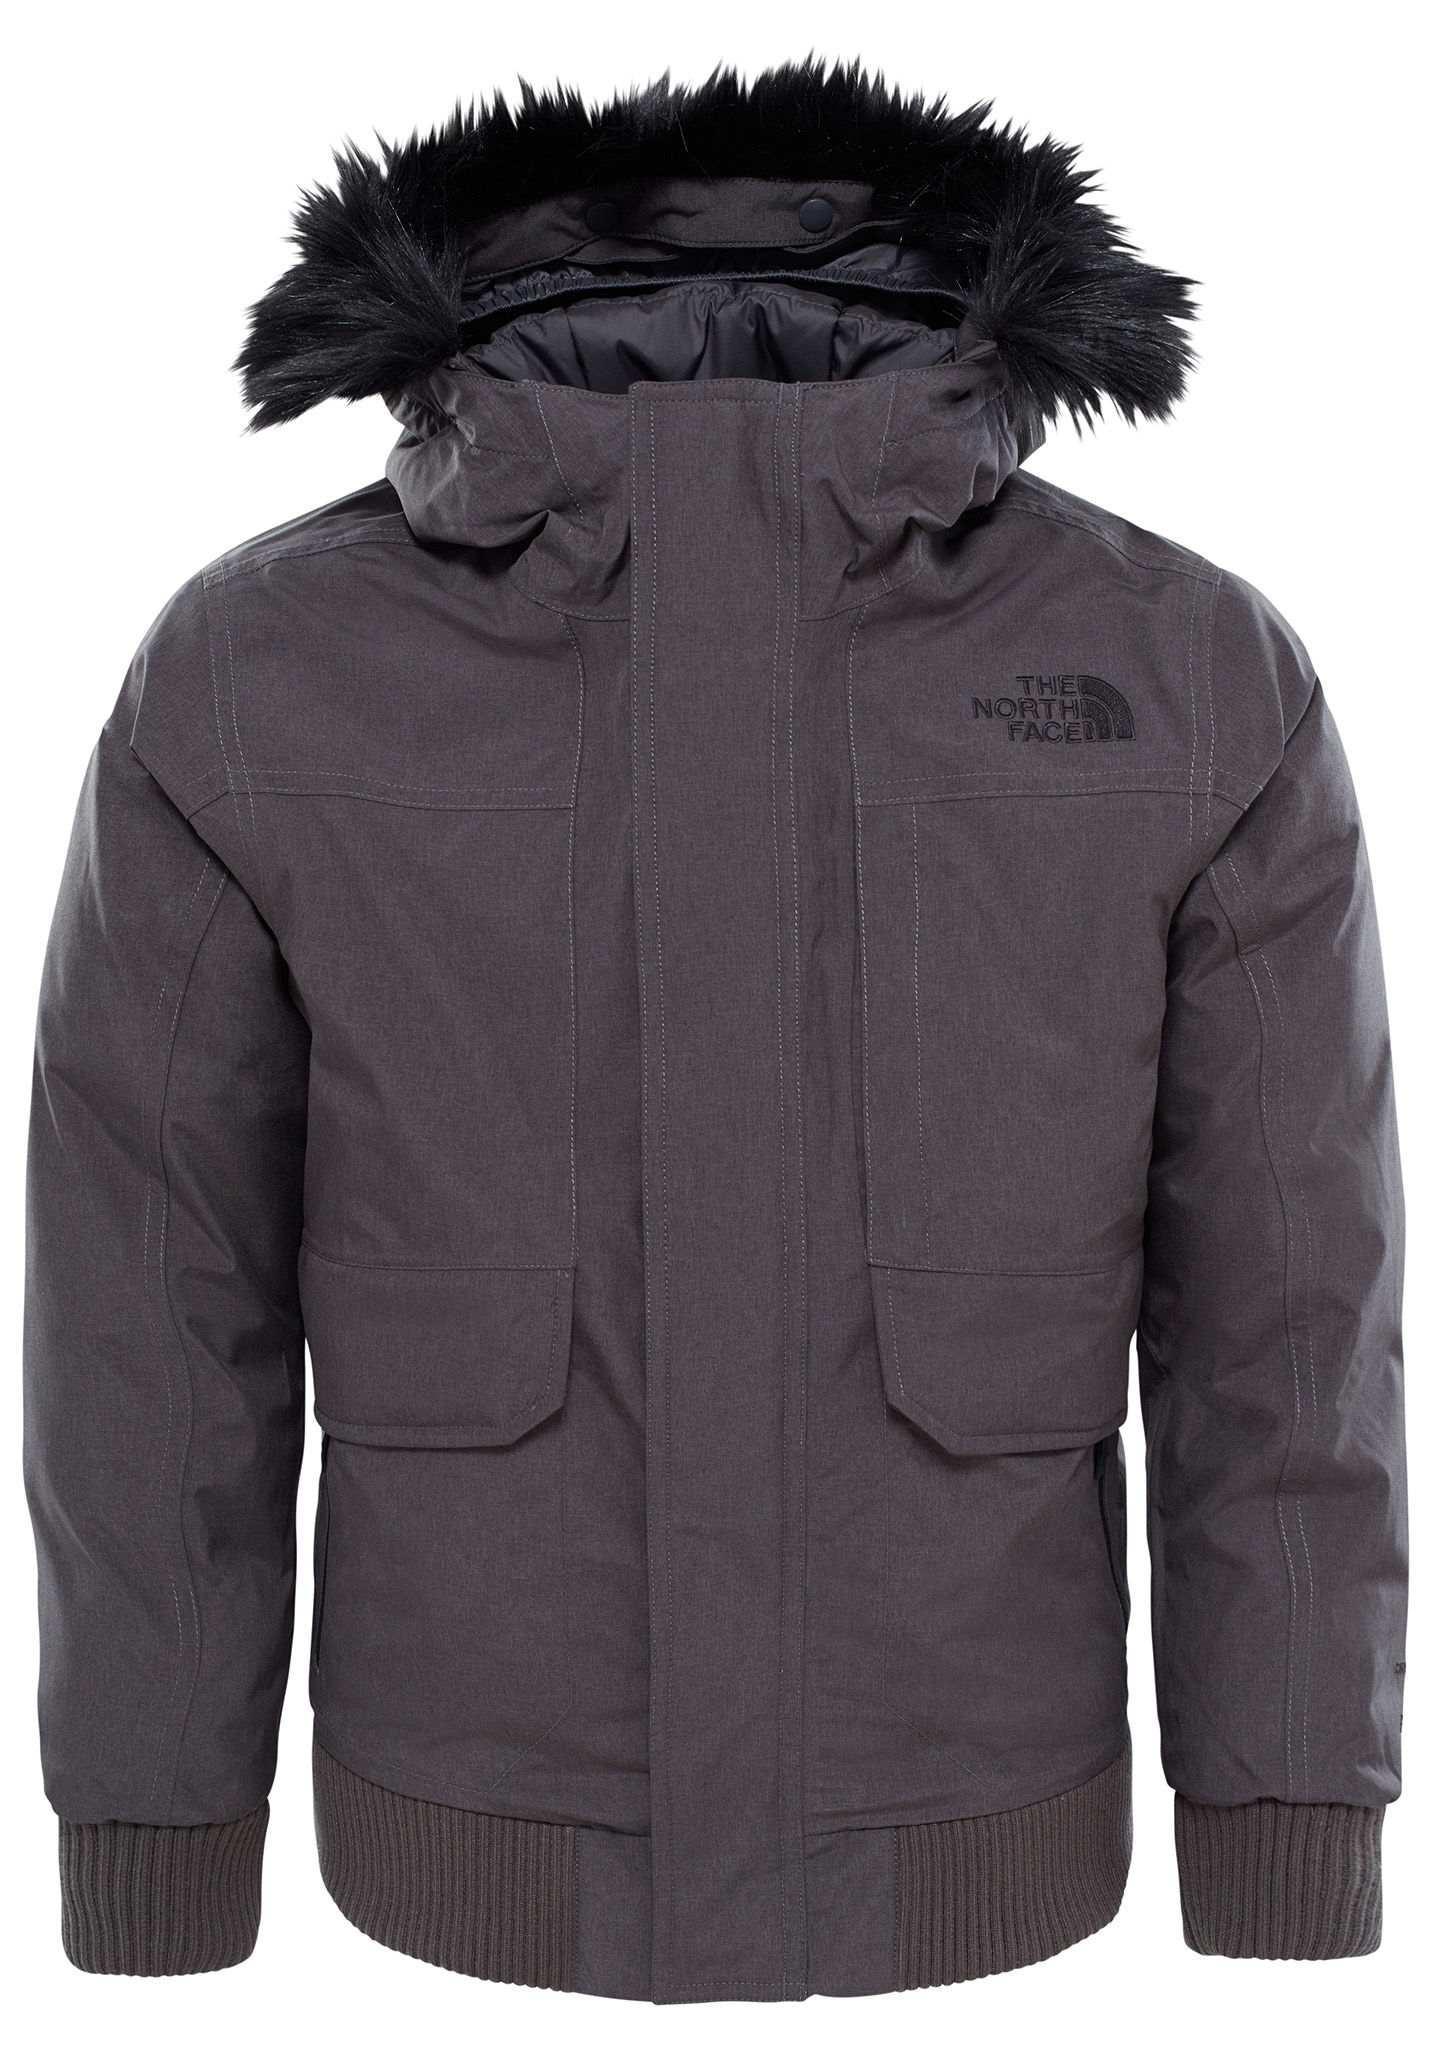 THE NORTH FACE Gotham Down - Giacca outdoor per Bambini - Grigio - Planet  Sports ab9d44f445d3